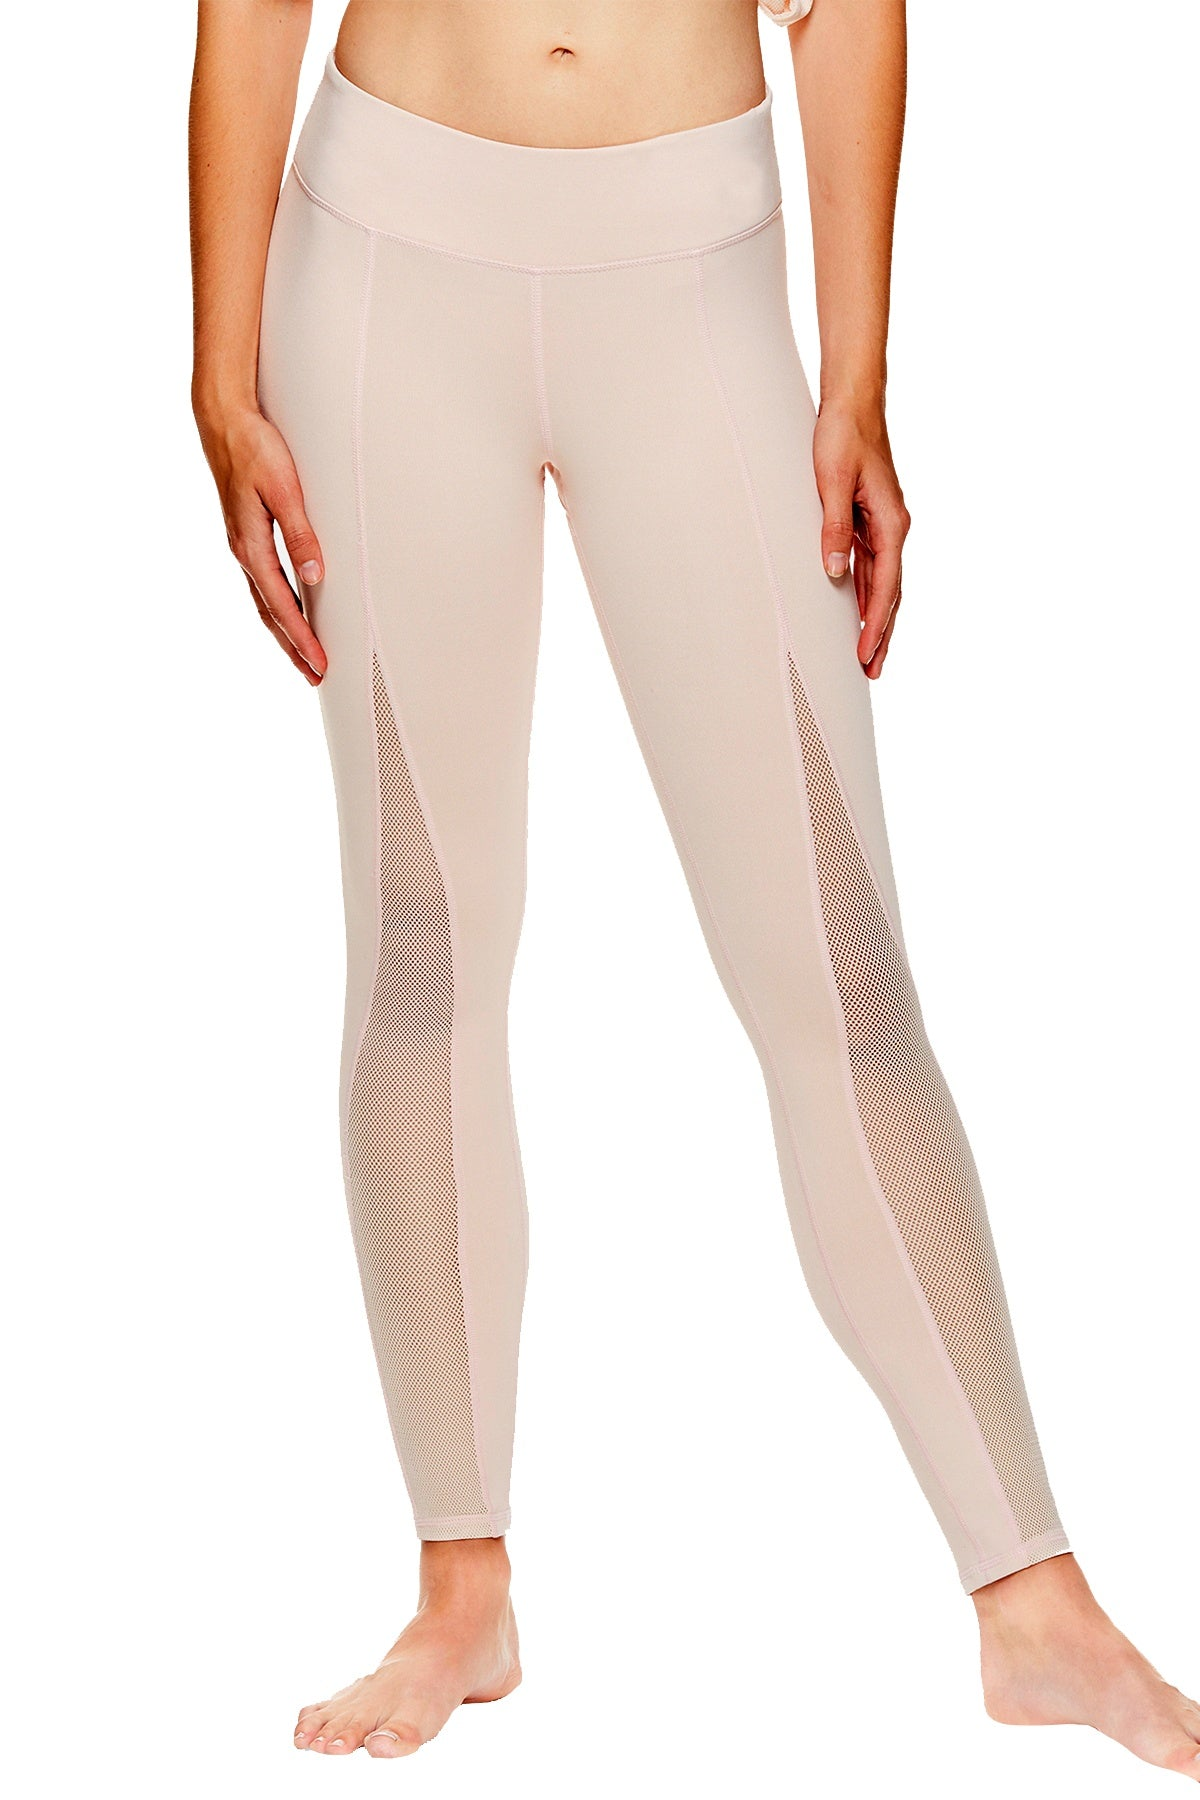 GAIAM x Jessica Biel Peach-Whip Madison Mesh-Detail High-Rise Legging